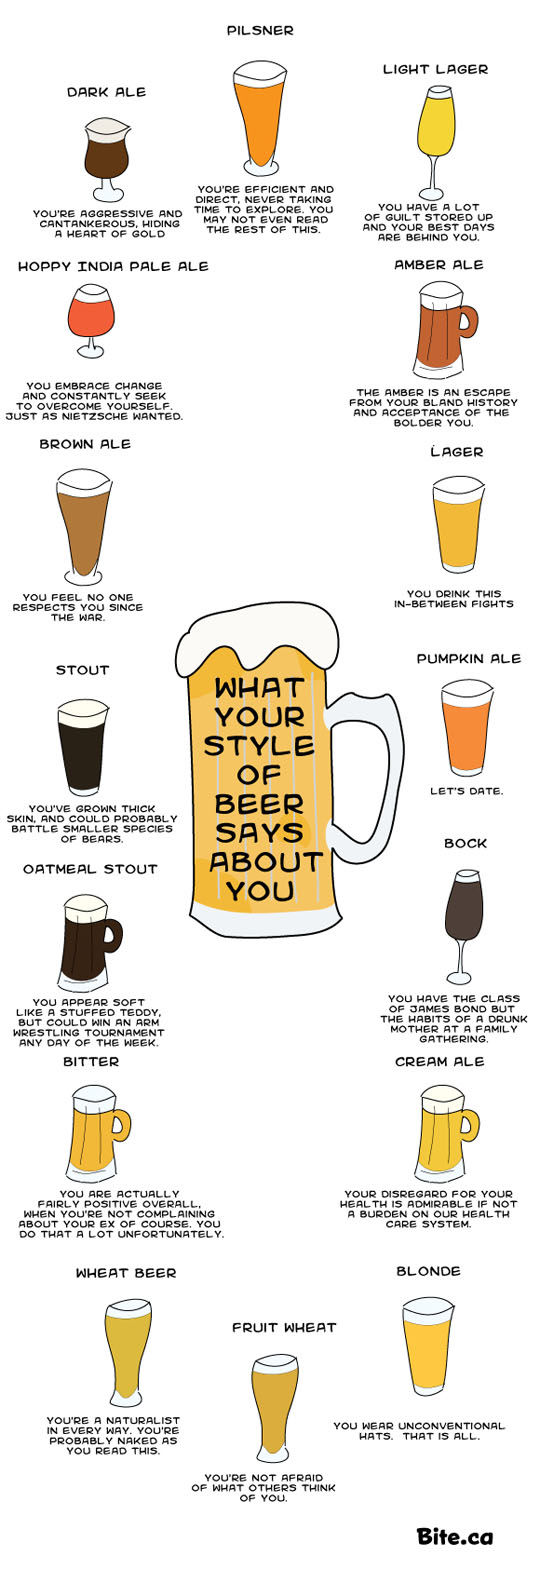 Revealing Beer-Personality Comics